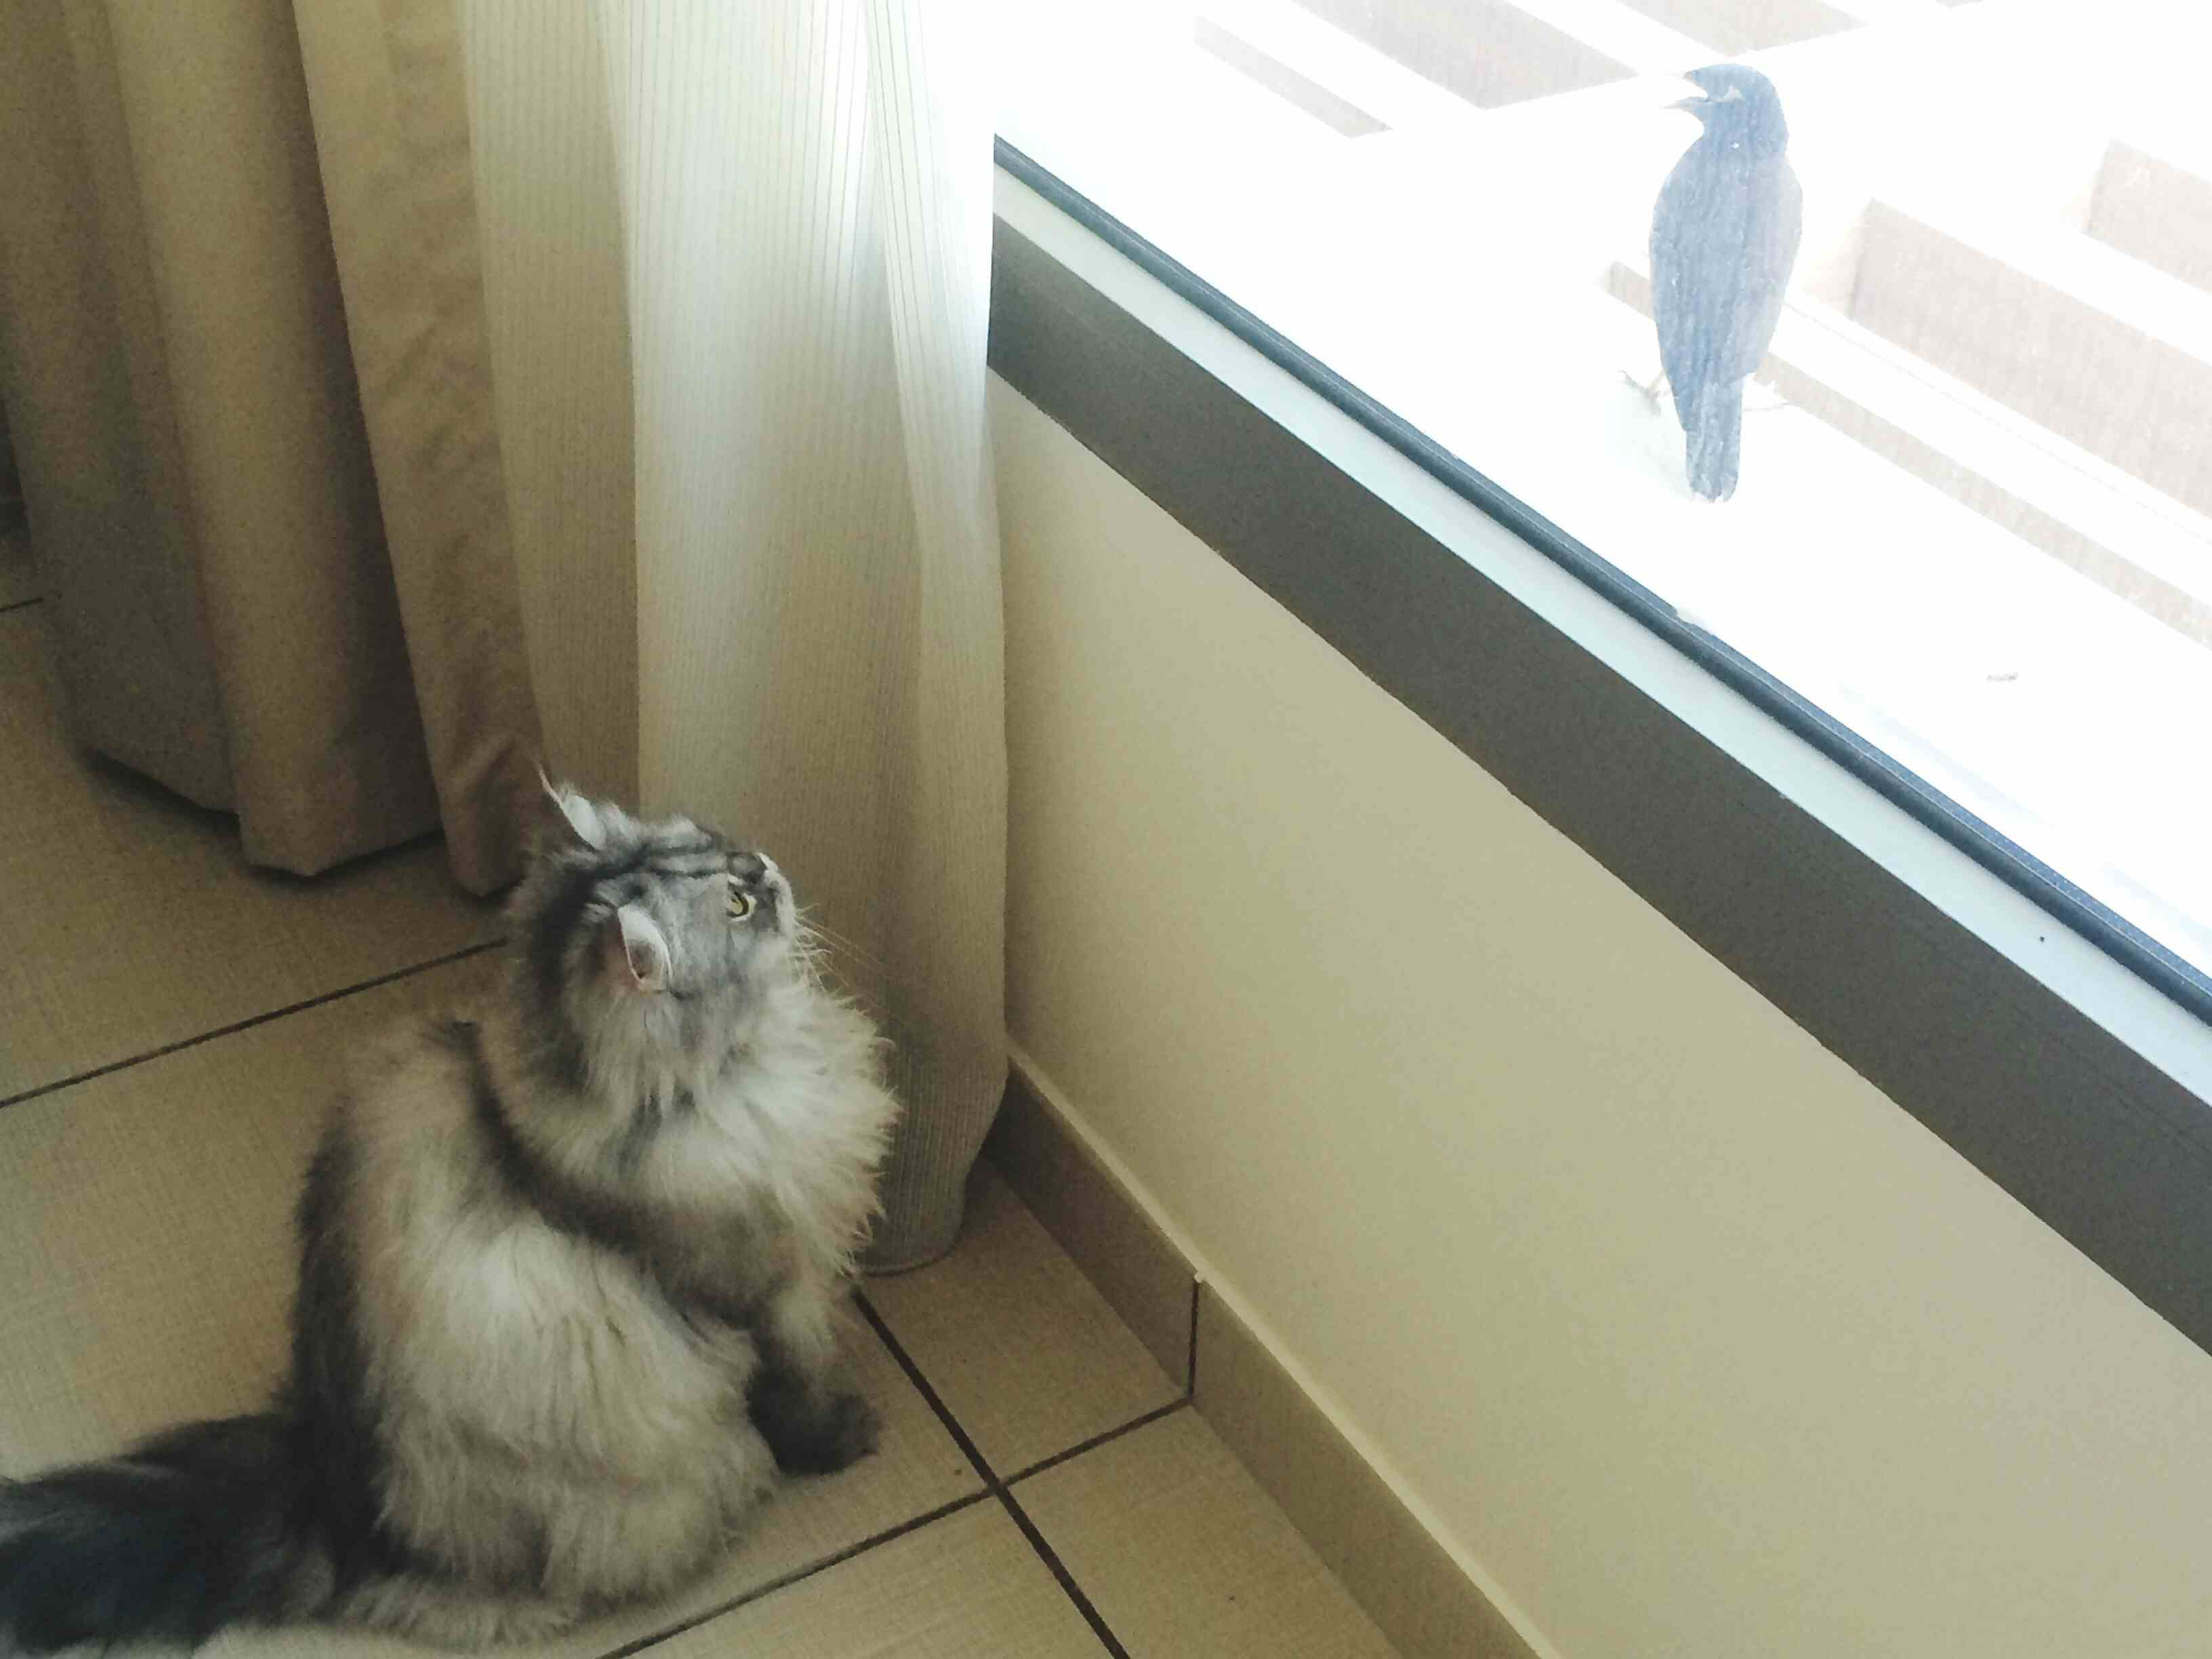 Maine Coon Cat looking at bird from window while sitting on floor